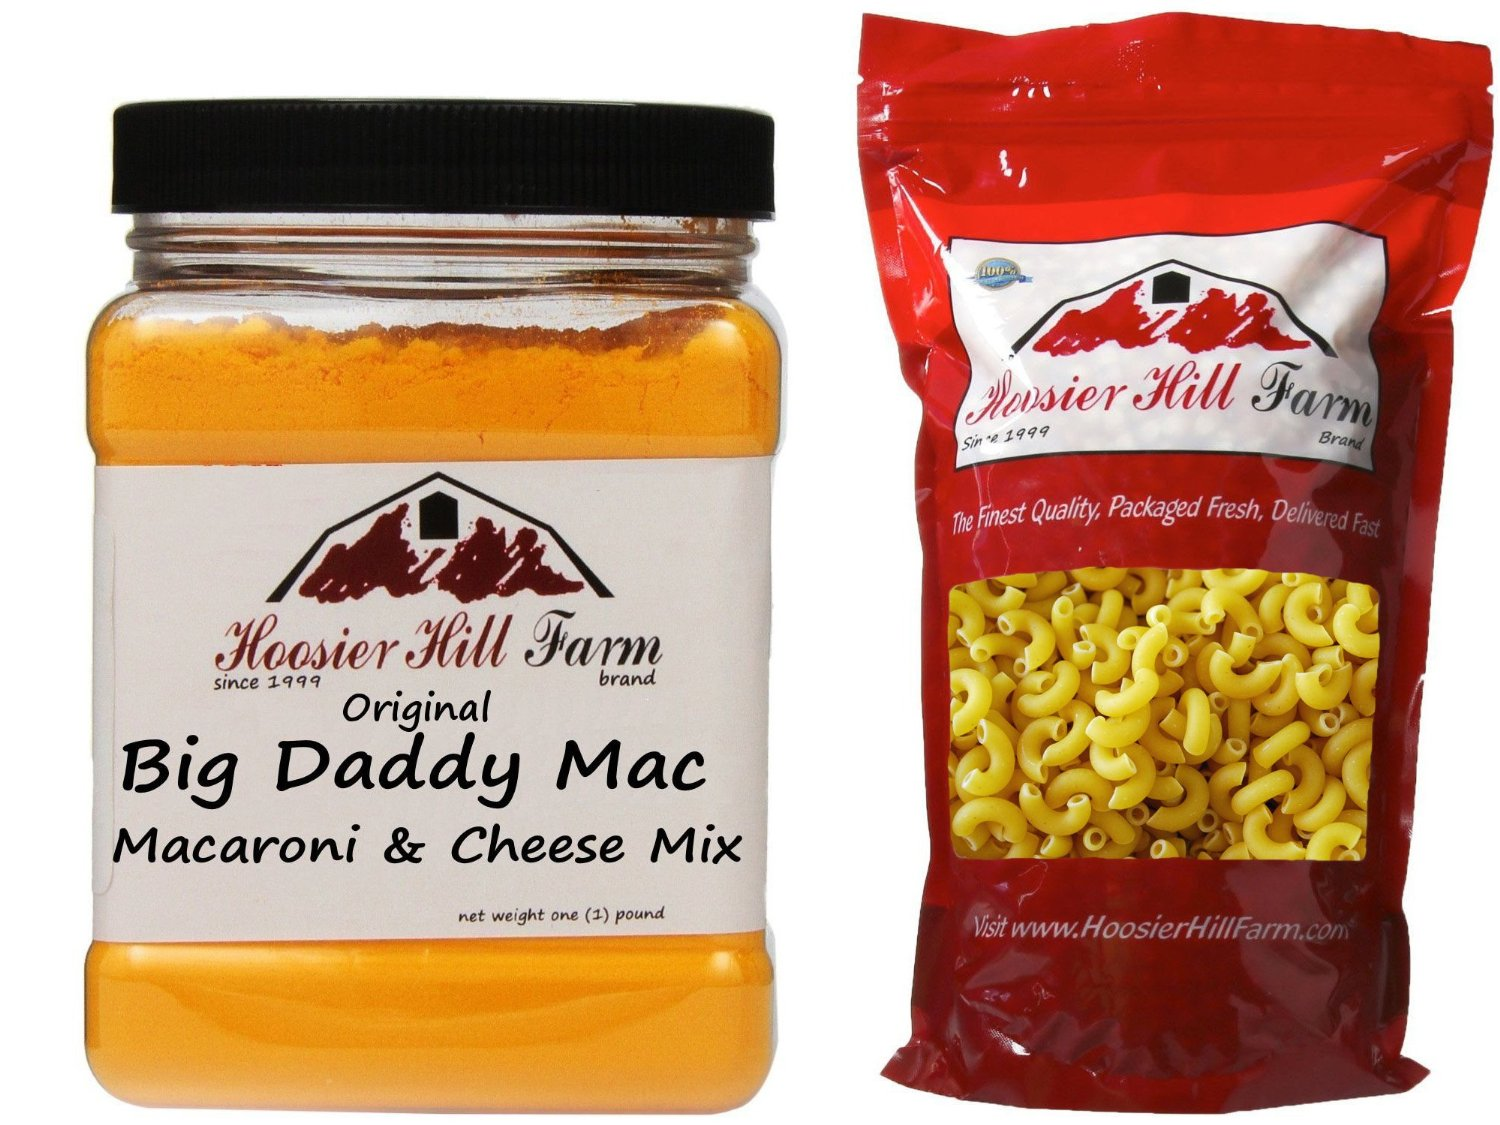 Big Daddy Mac Pac - Kit contains Big Daddy Mac mix and Elbow Noodles - Great Mac N' Cheese